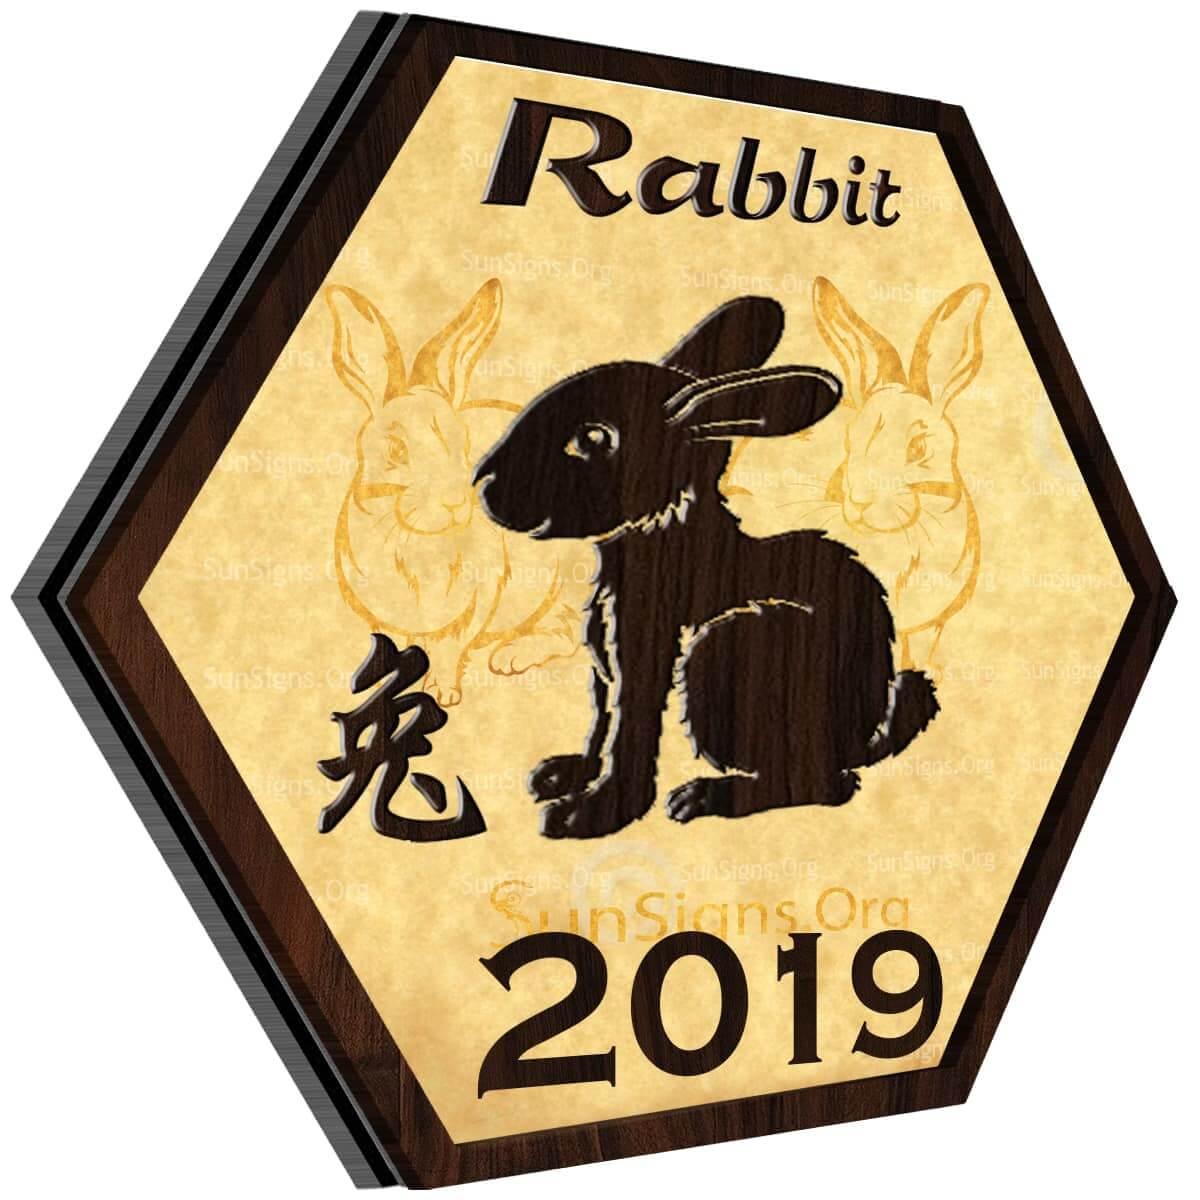 Rabbit Horoscope 2019 Predictions For Love, Finance, Career, Health And Family